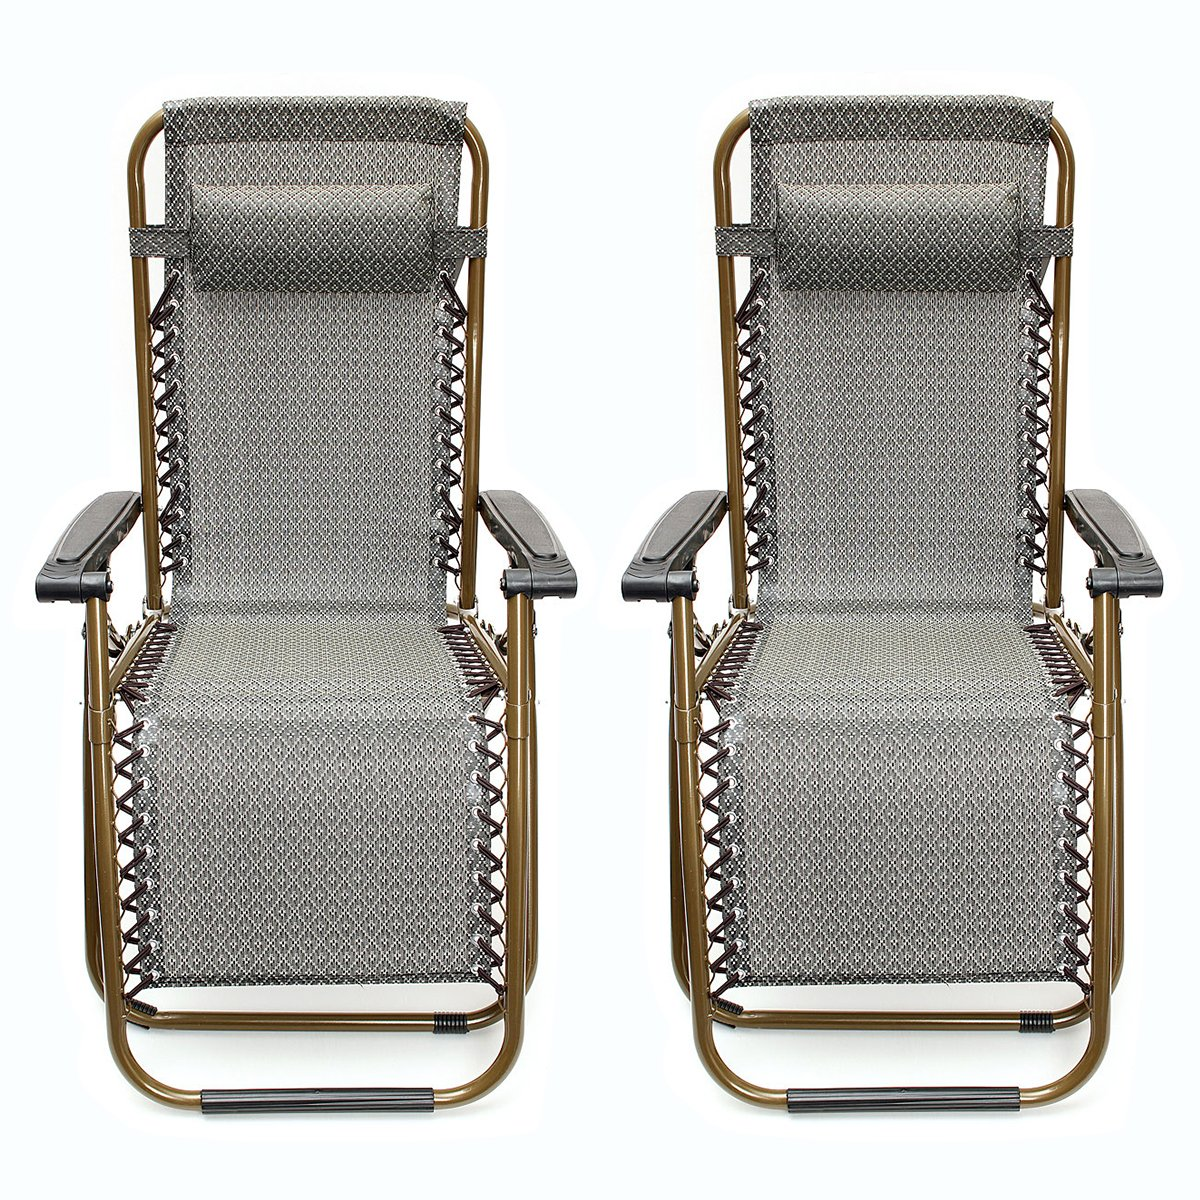 Beach lounge chair portable - Top 10 Best Outdoor Reclining Lounge Chair For Pool And Patio 2016 2017 On Flipboard